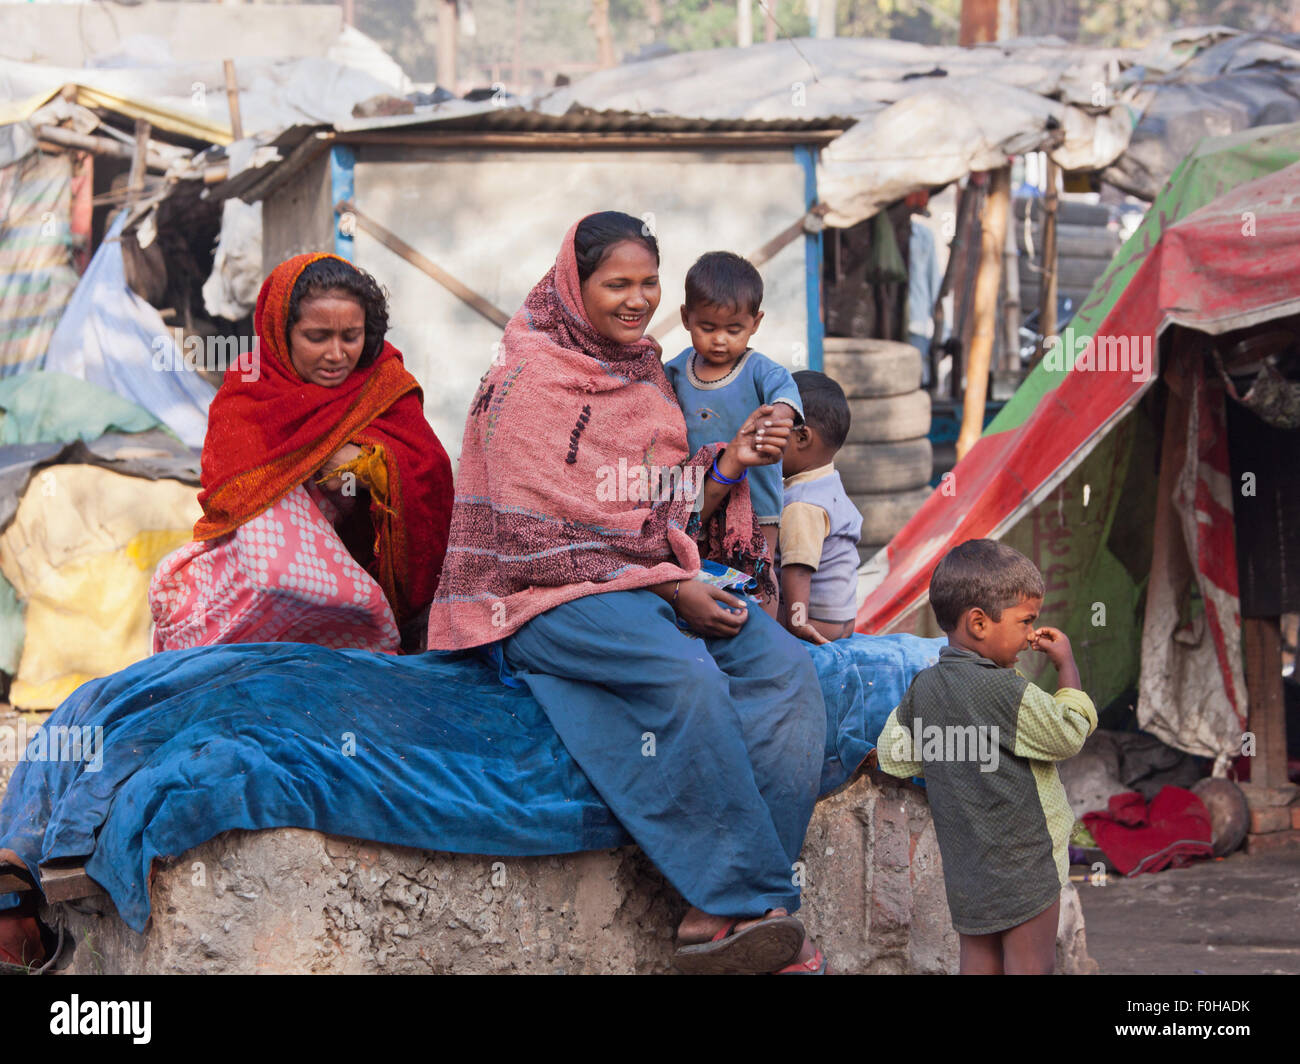 Residents of a makeshift settlement on the edge of Varanasi. Shanty towns such as this are common across Indian - Stock Image